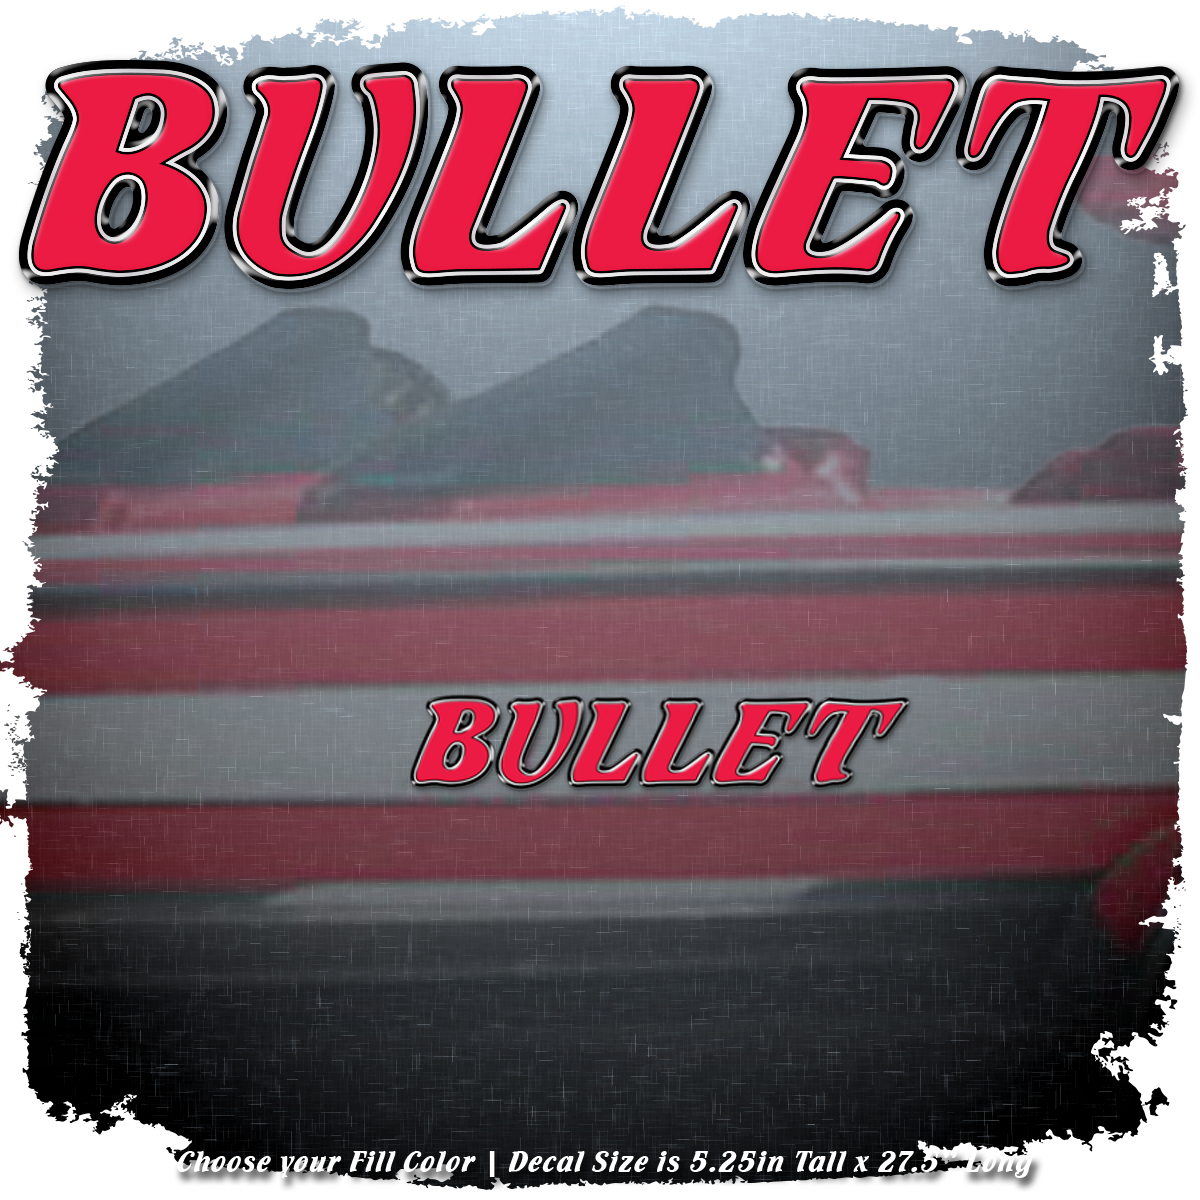 Domed Bullet Decal Set, Choose Your Size and Color (2 included)